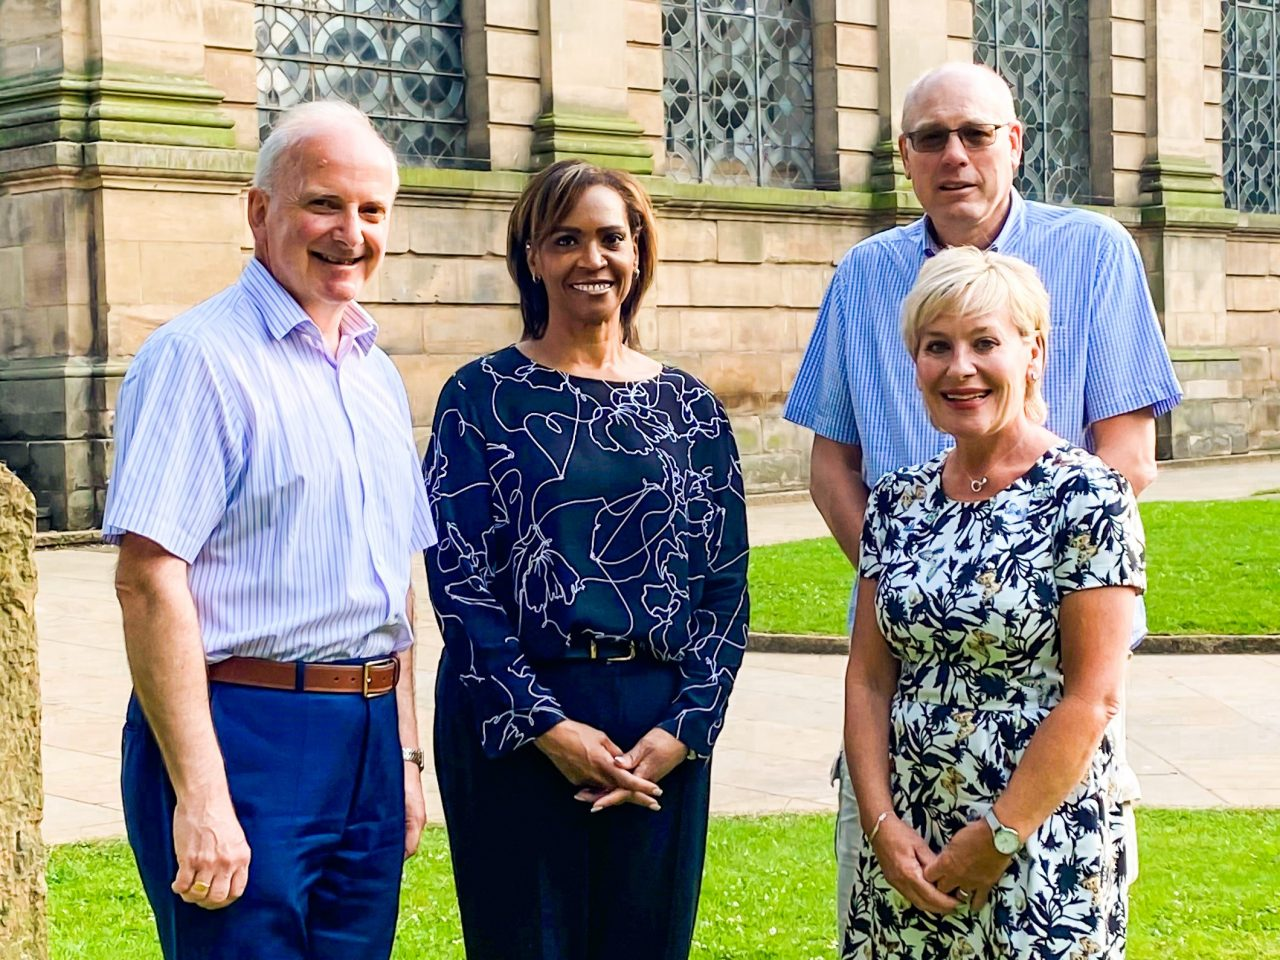 Community Foundation appoints new trustee